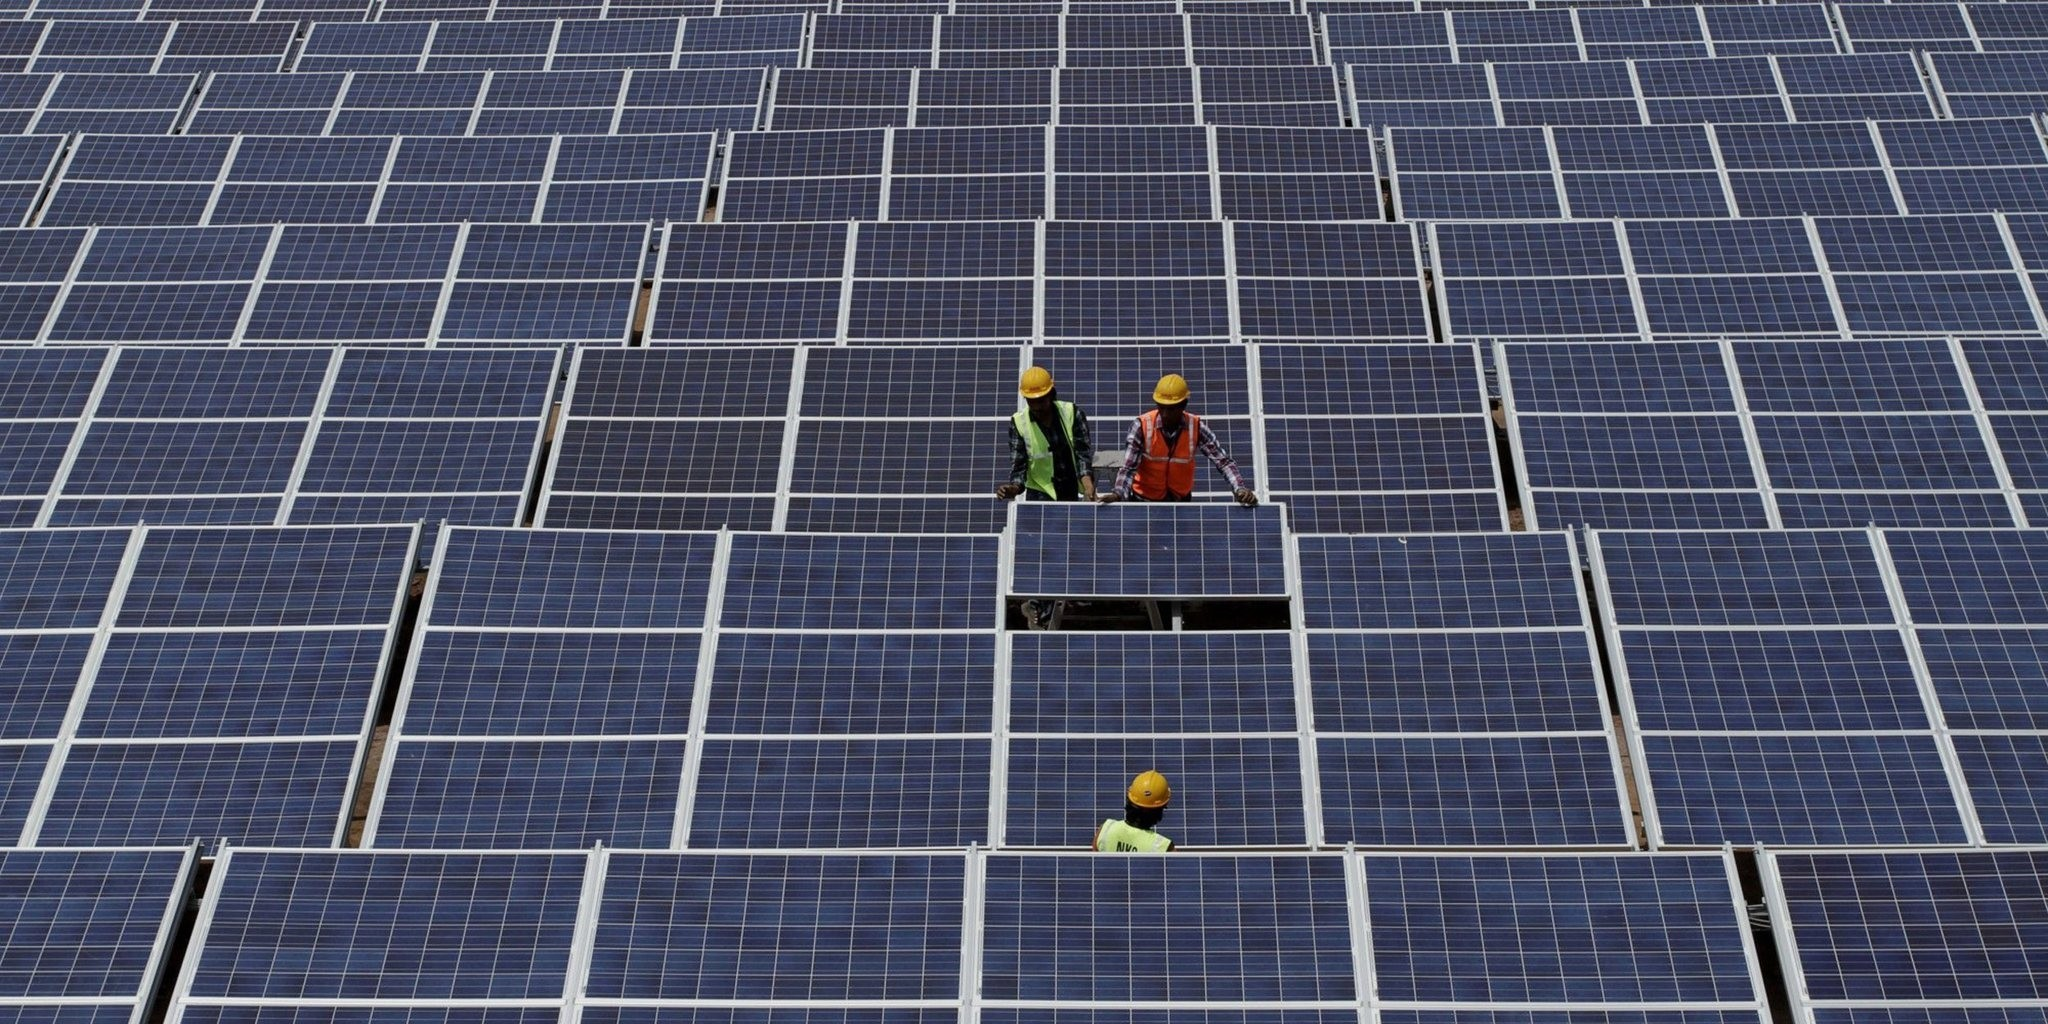 Indian workers install solar panels at the Gujarat Solar Park at Charanka in Patan district, about 250 kilometers from Ahmadabad, India, April 14, 2012. (AP Photo)